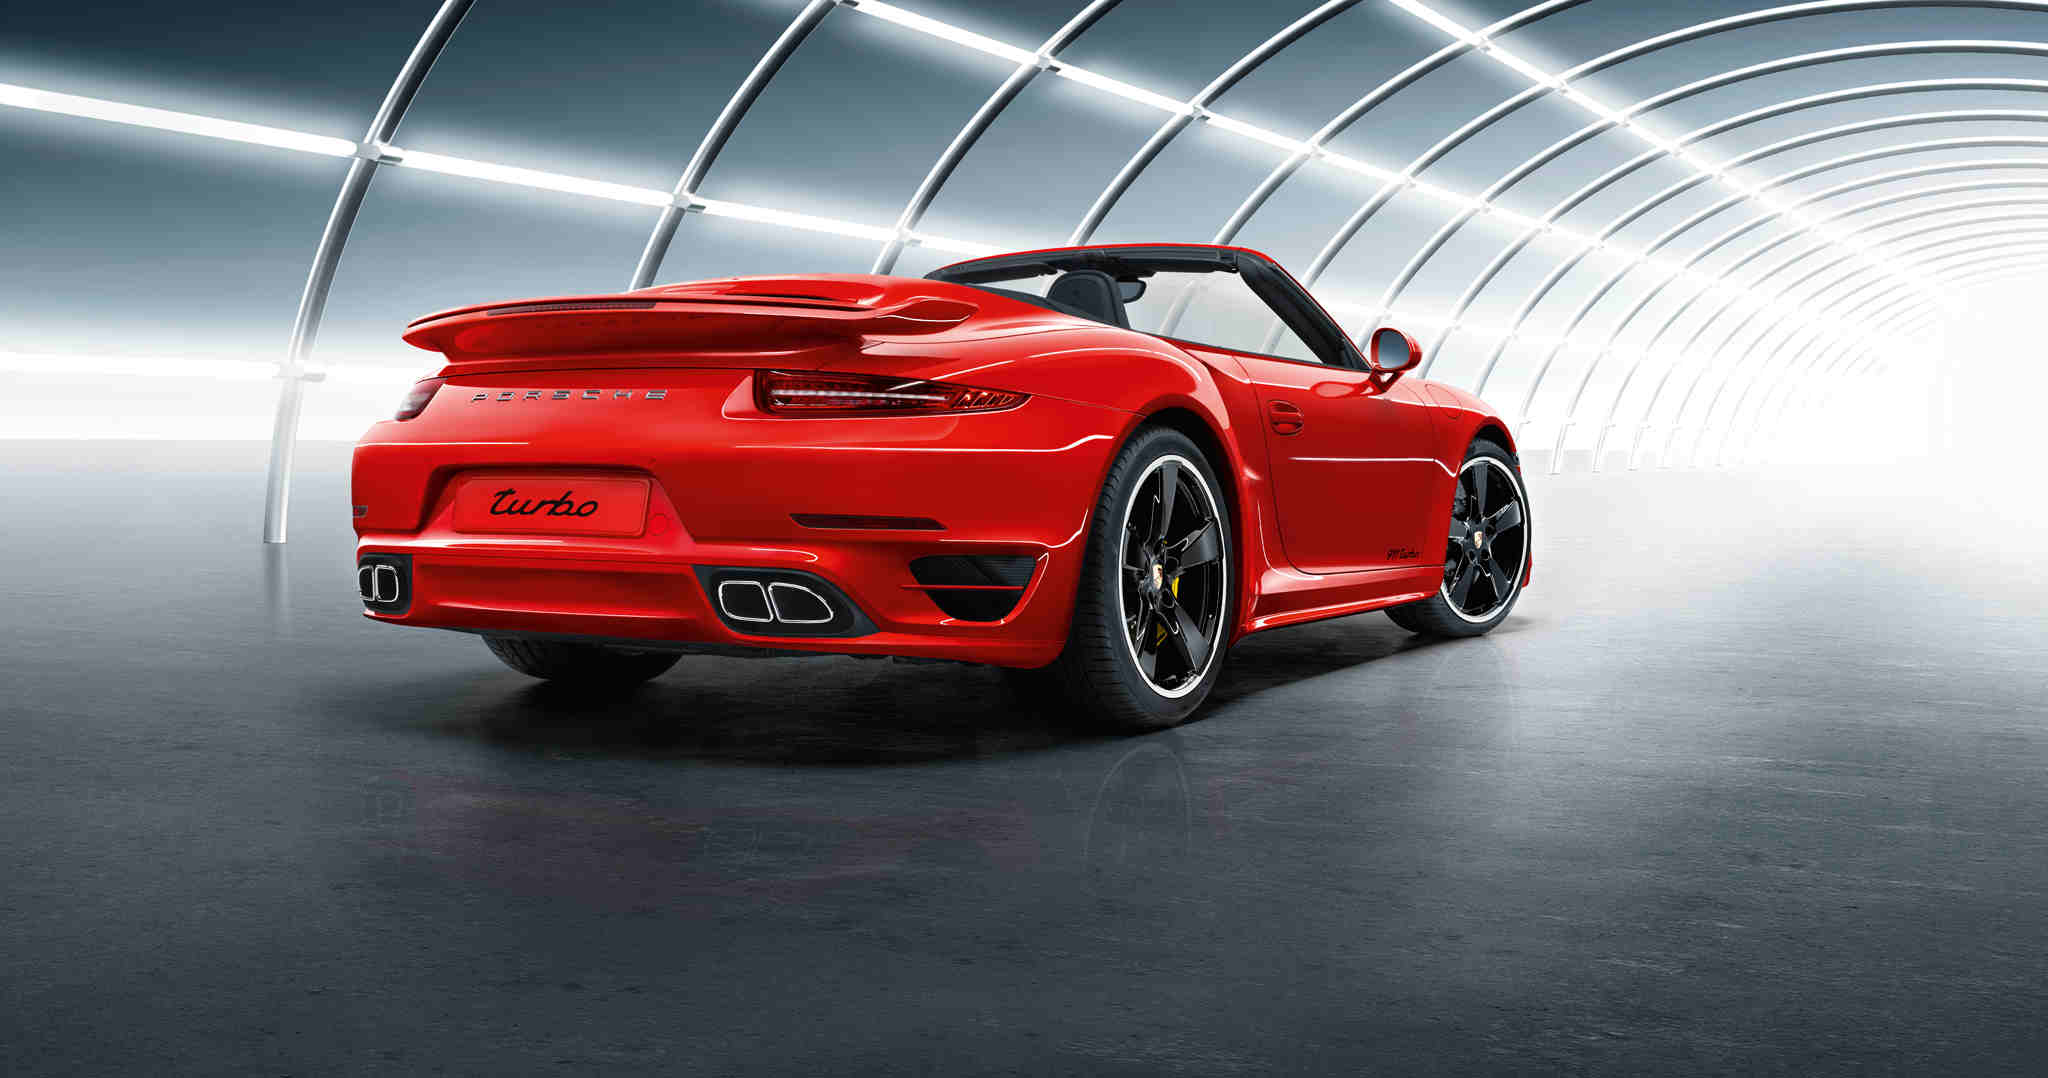 Aerokit 911 Turbo Add On Package For 911 Turbo Cabriolet 991